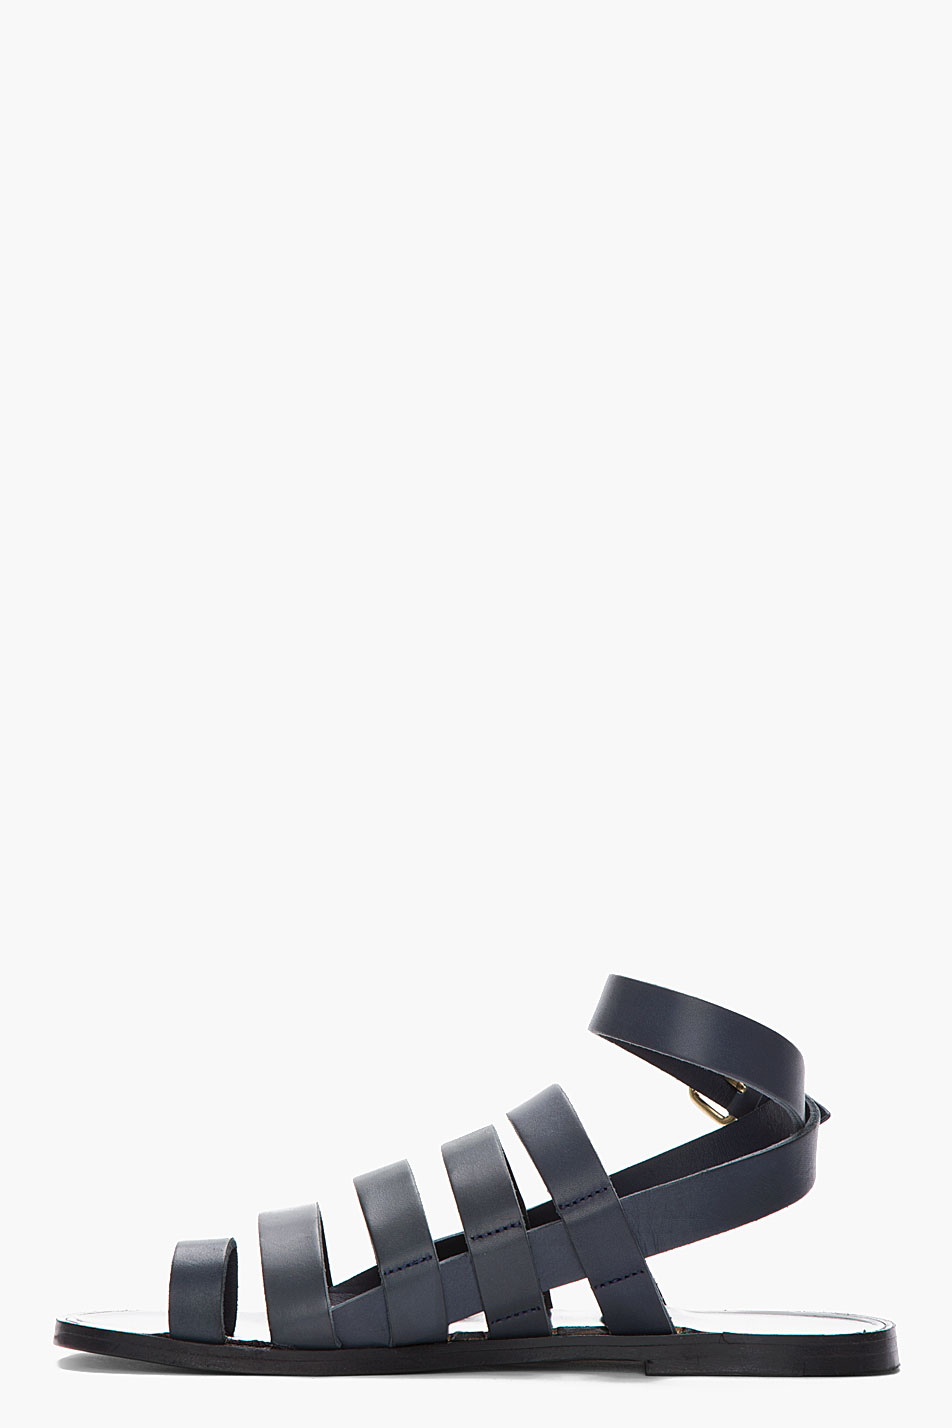 Paralelle sandals - Black Pierre Hardy Official Site Cheap Price FAMRm8G